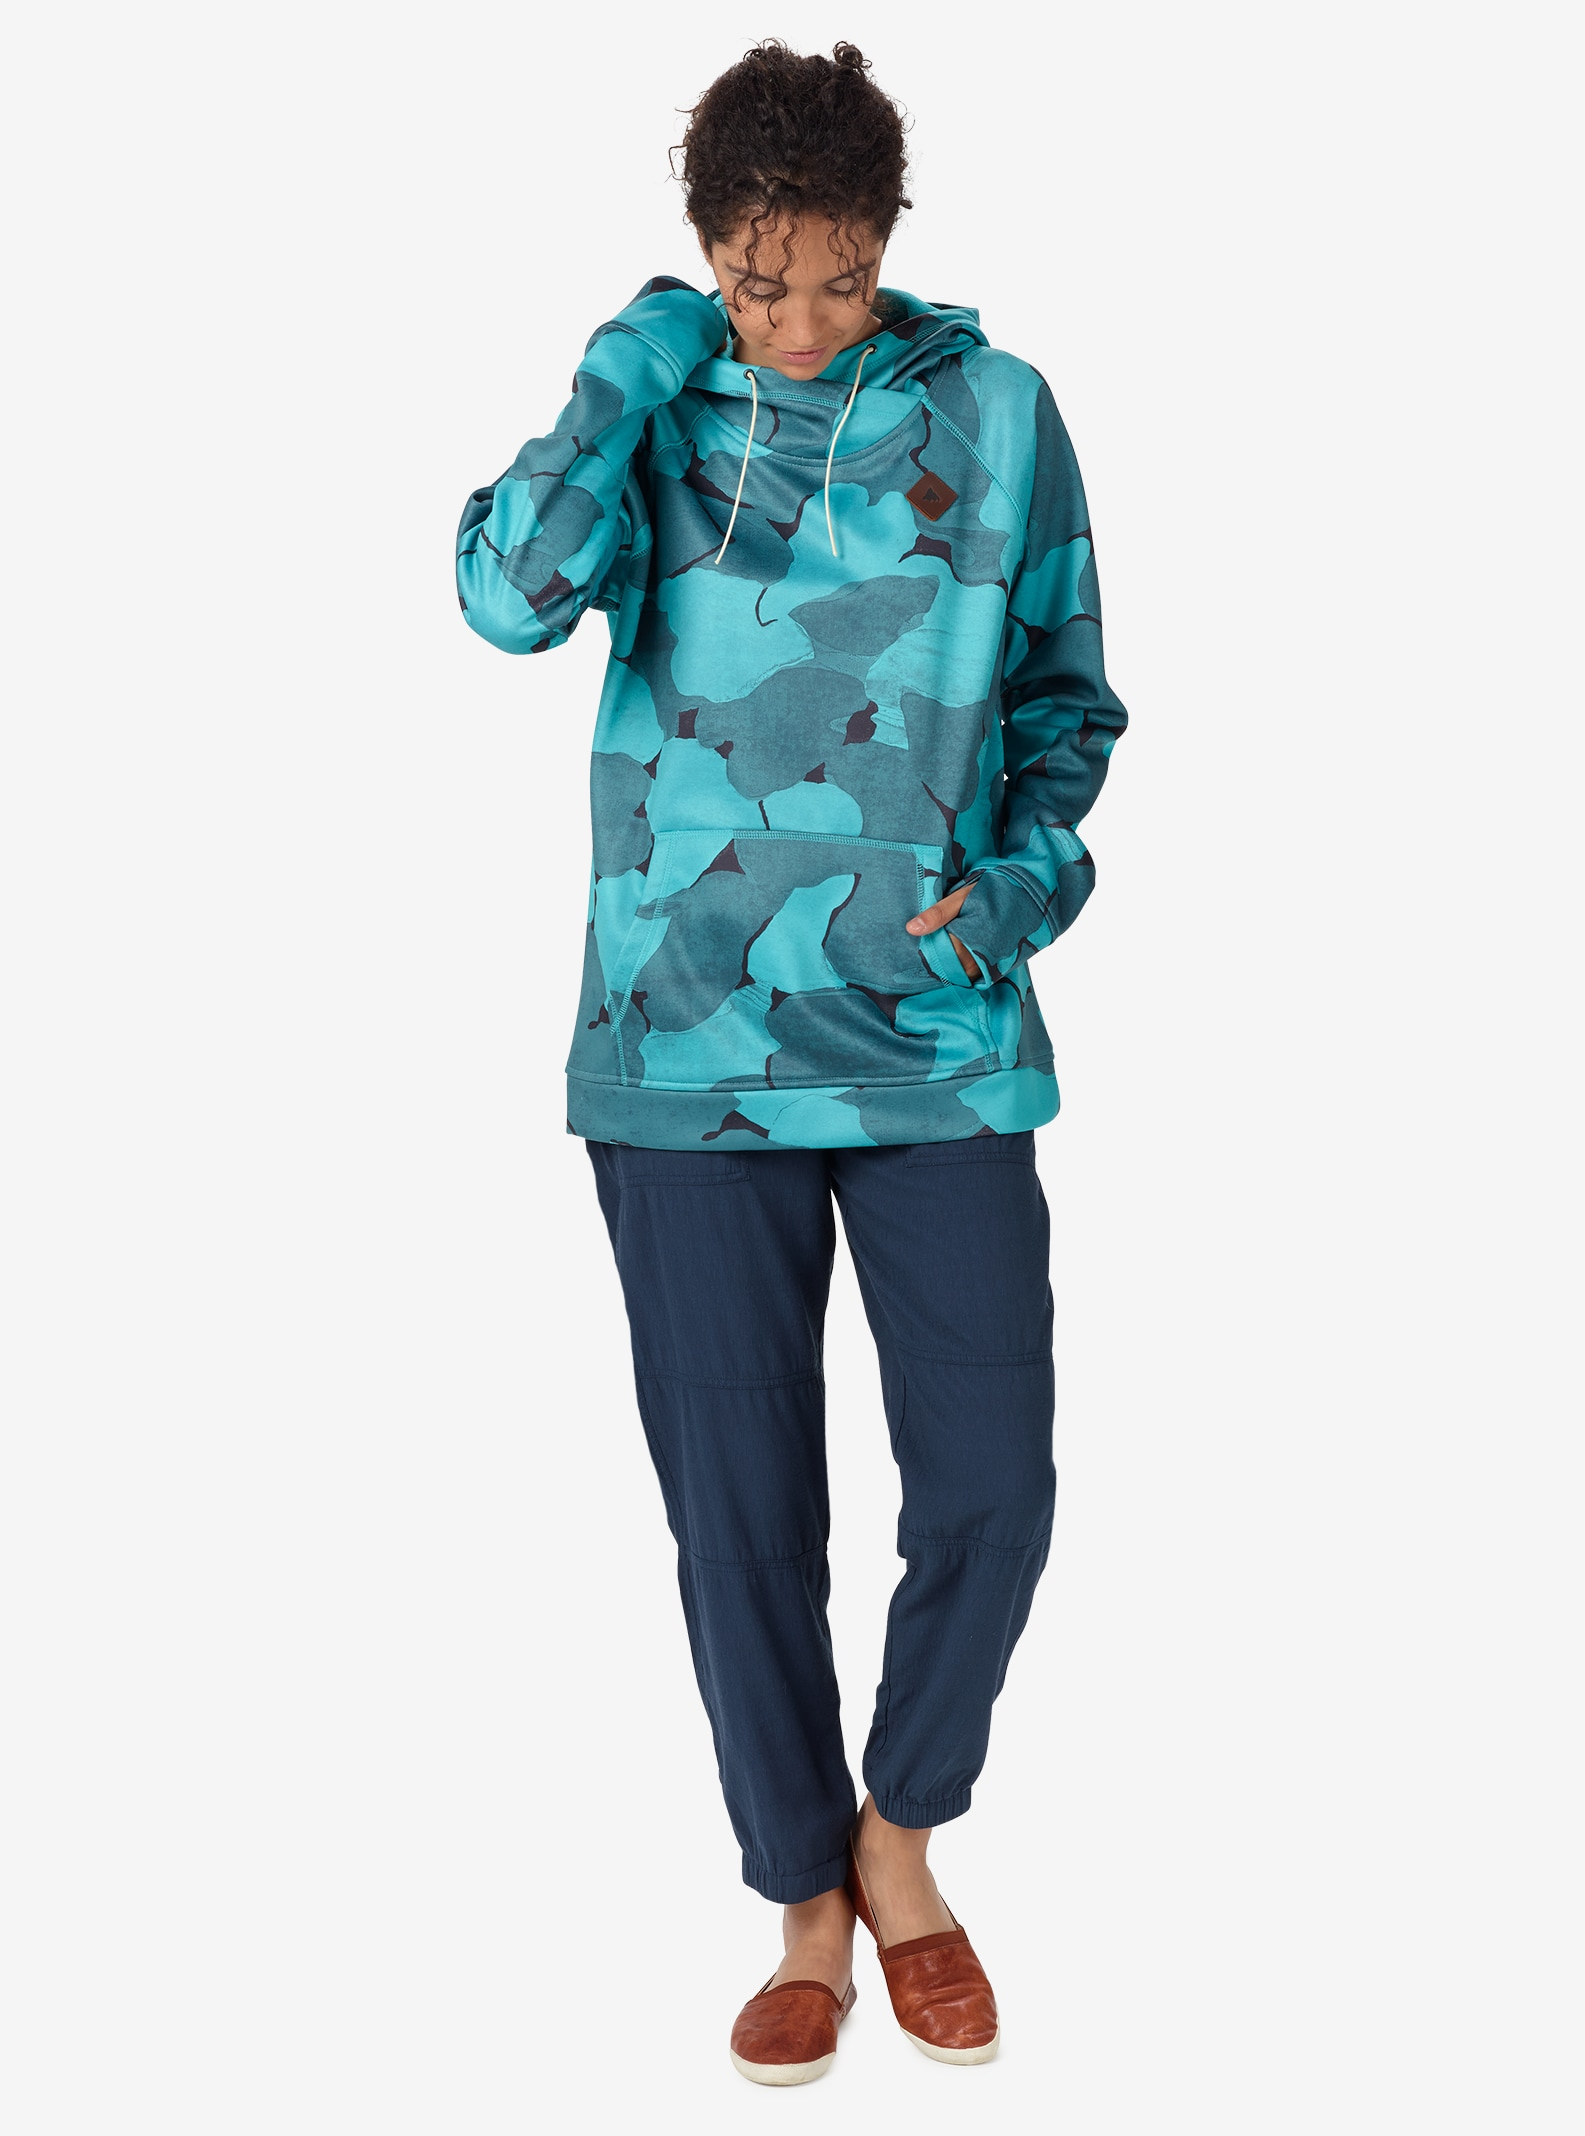 Burton Heron Pullover Hoodie shown in Everglade Pond Camo